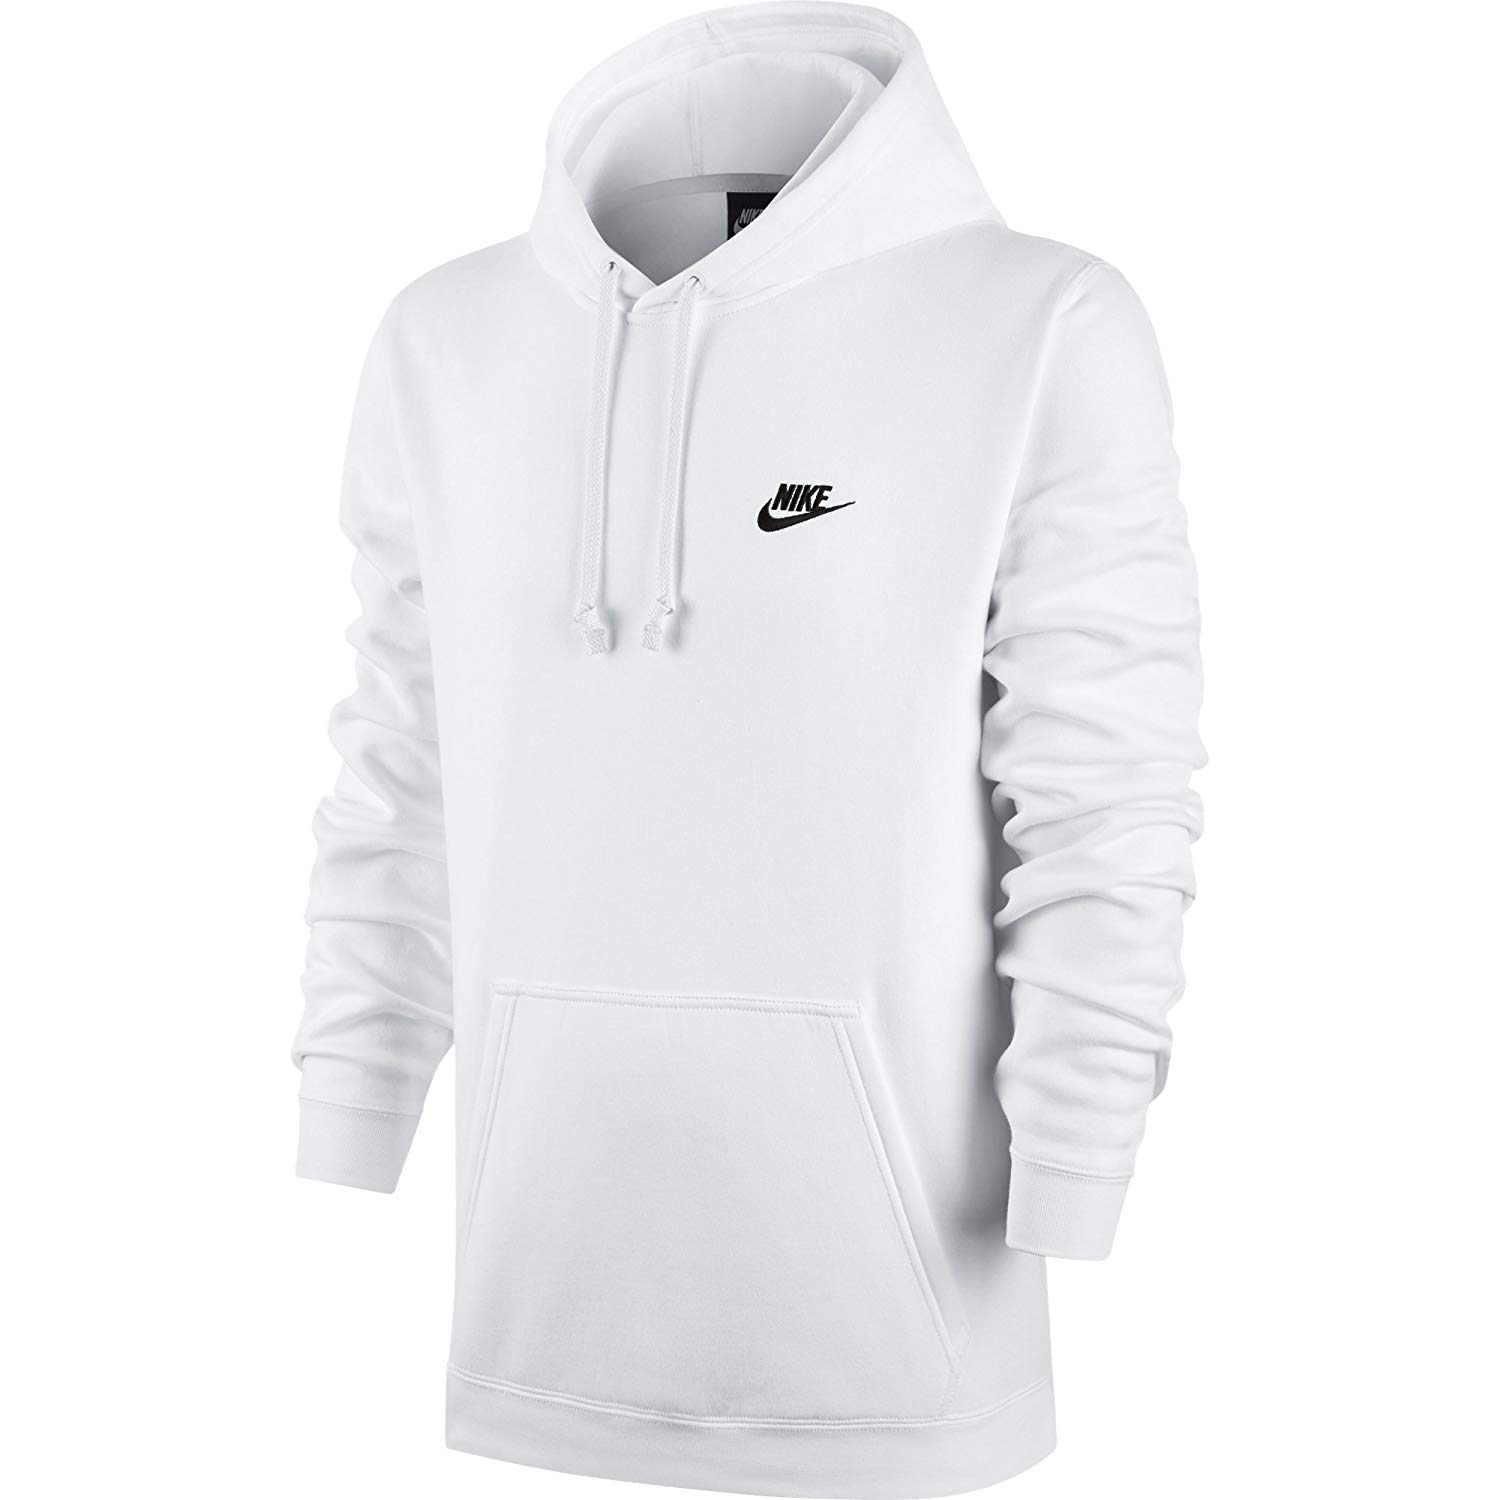 a7d955f55 Details about Nike Mens Club Fleece Pullover Hoodie 804346-100